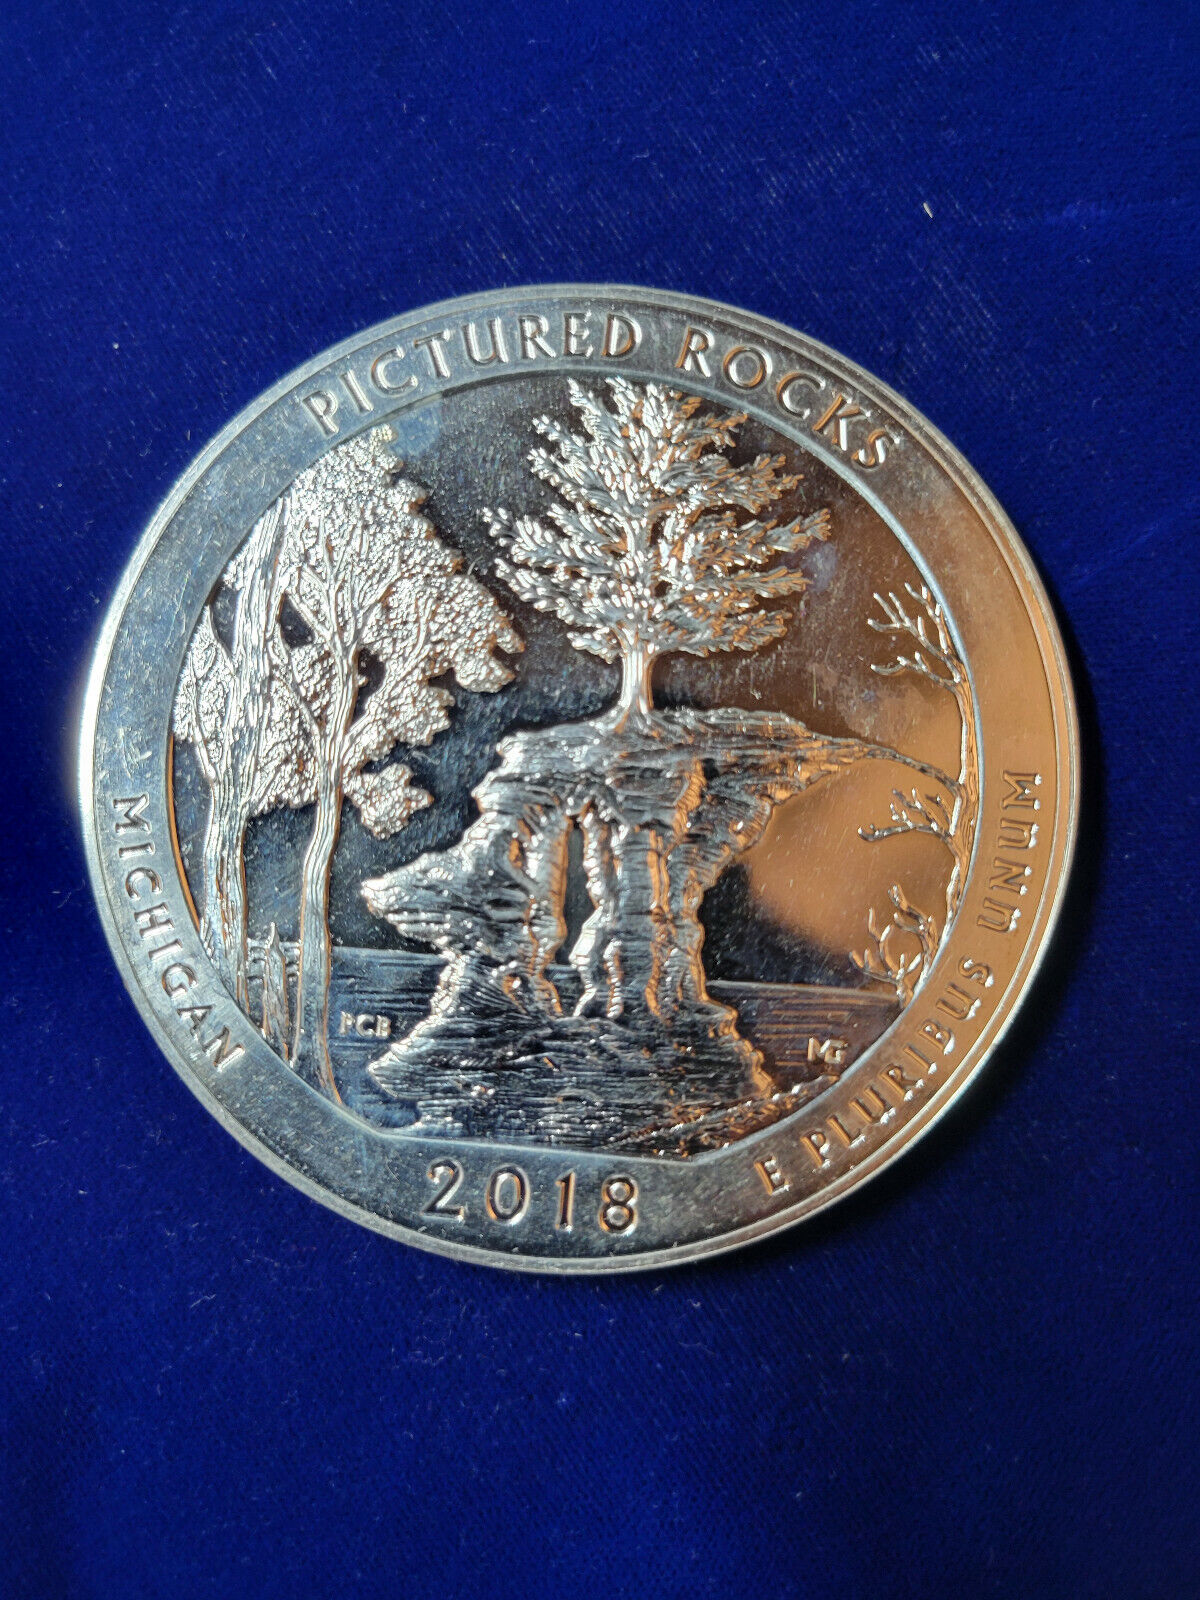 2018 America The Beautiful Pictured Rocks 5oz Silver Coin In Capsule - $179.99